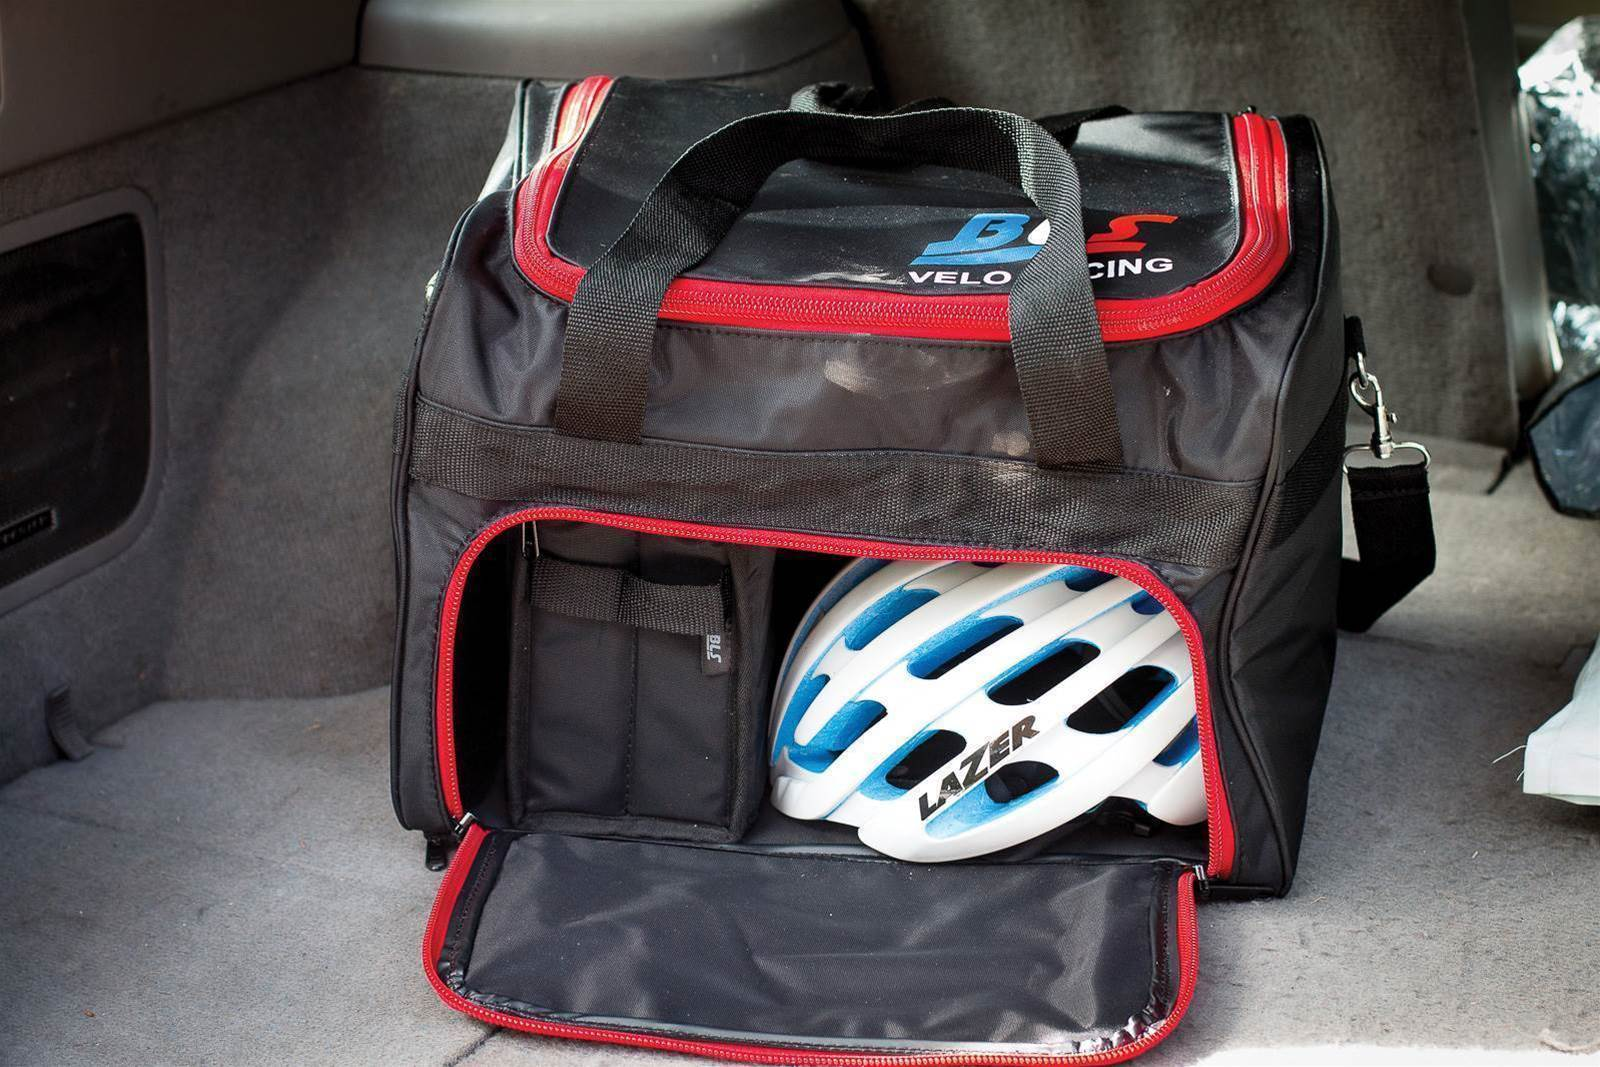 TESTED: BLS Veloracing Bag